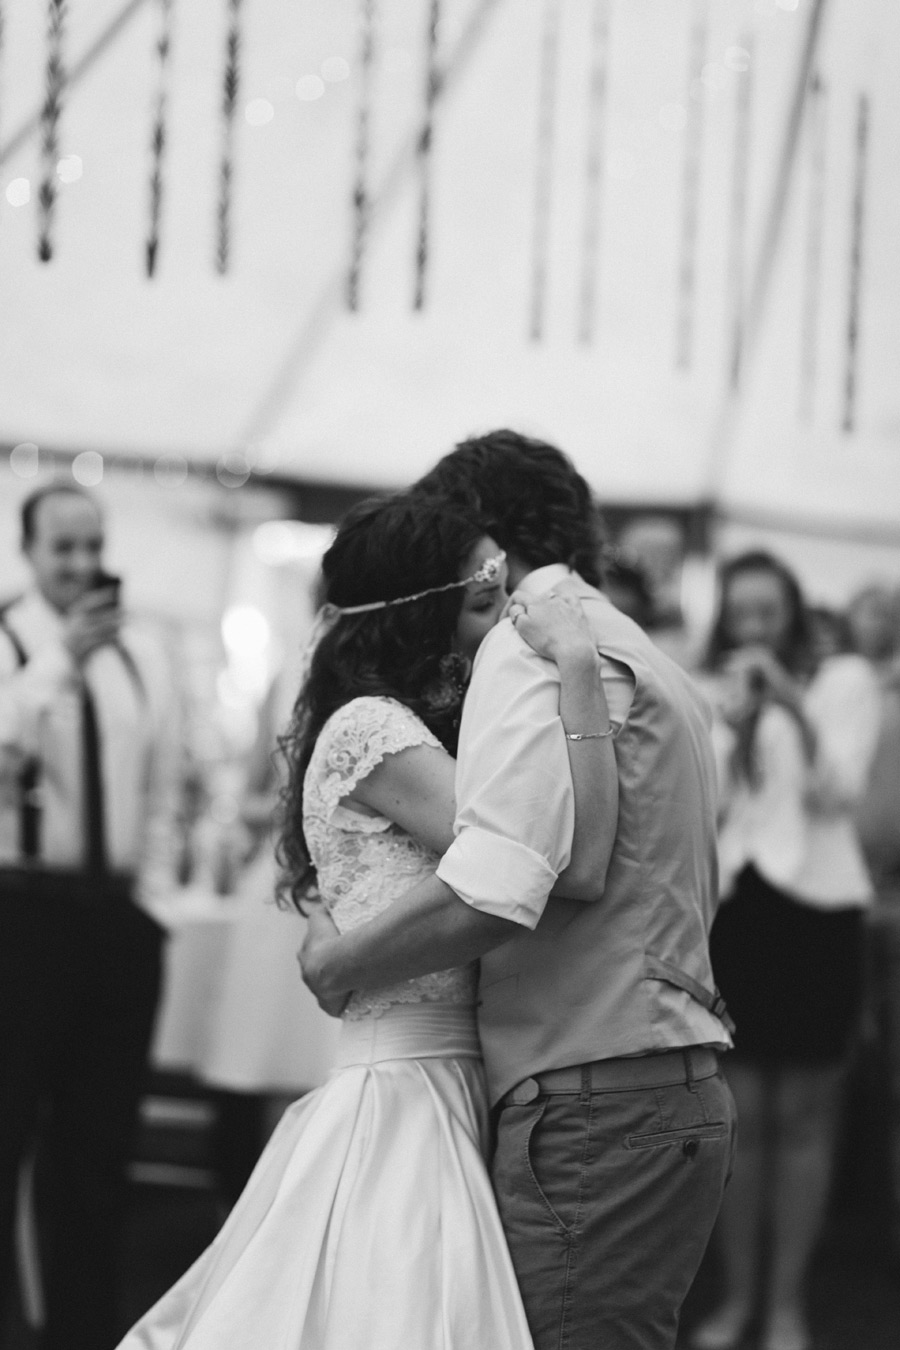 Romantic first dance wedding photo